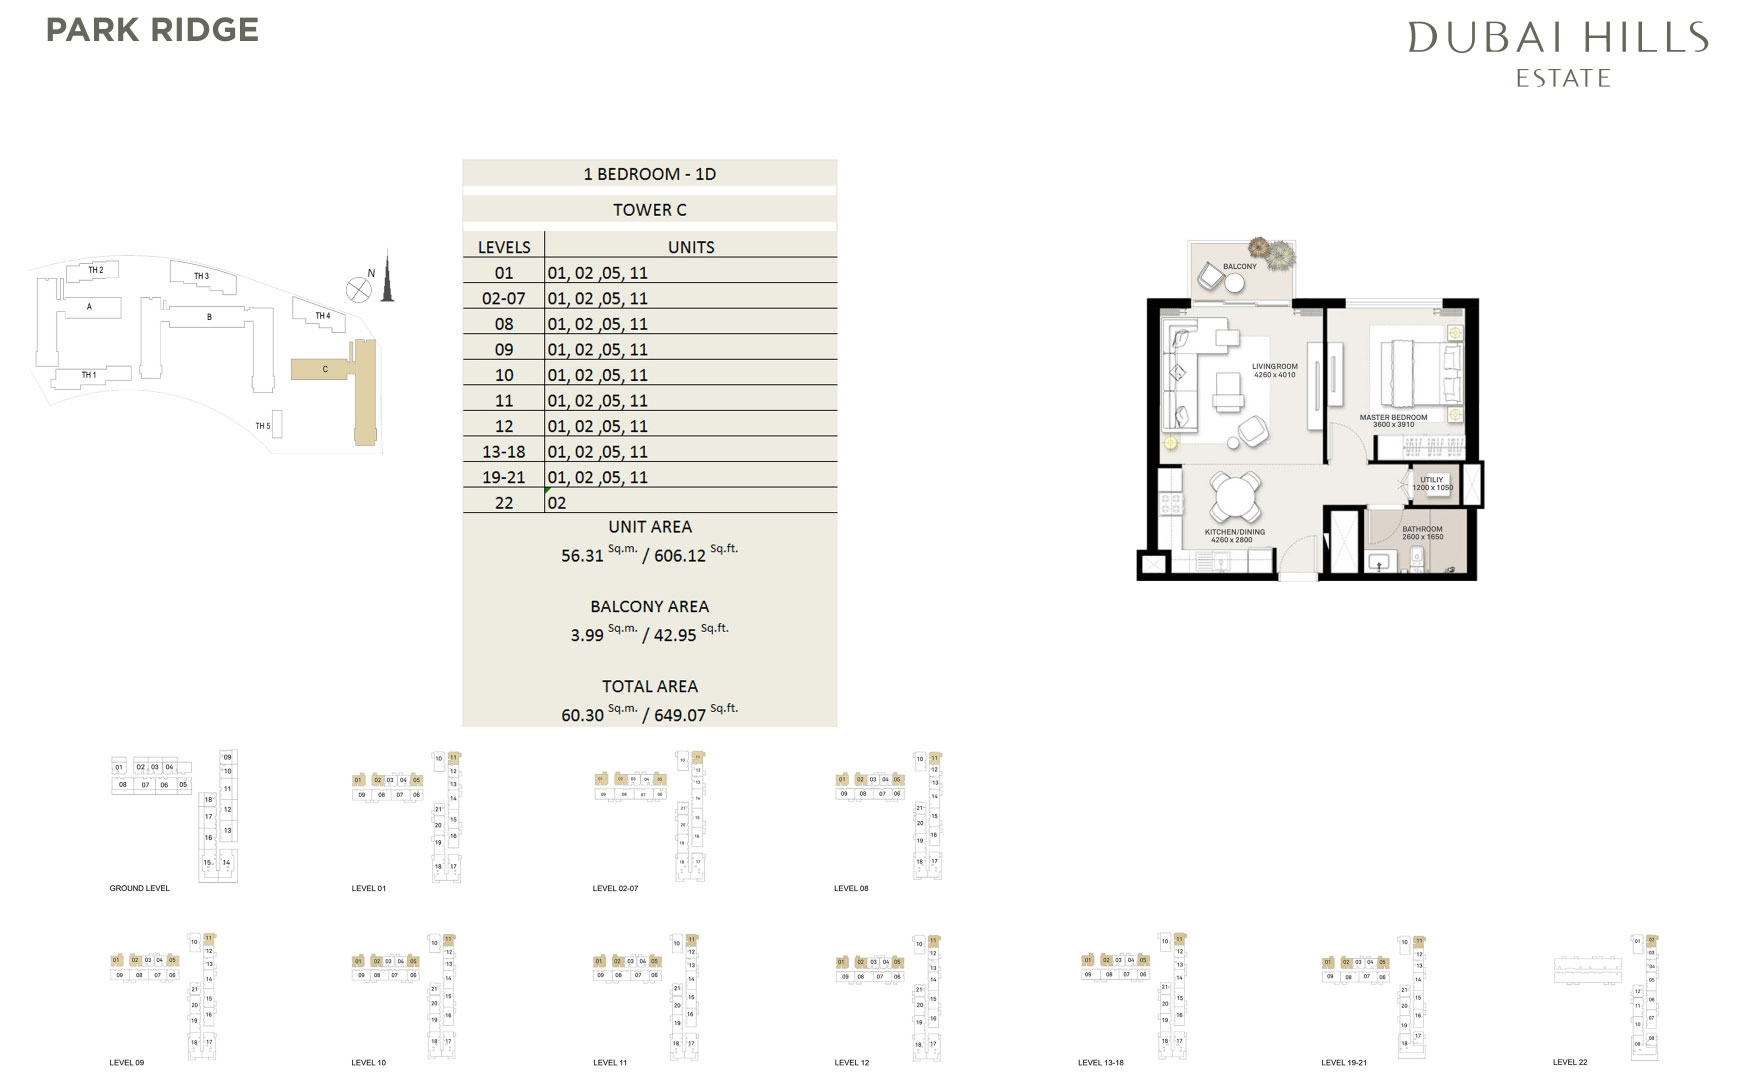 1 Bedroom Tower C 649 07sqft